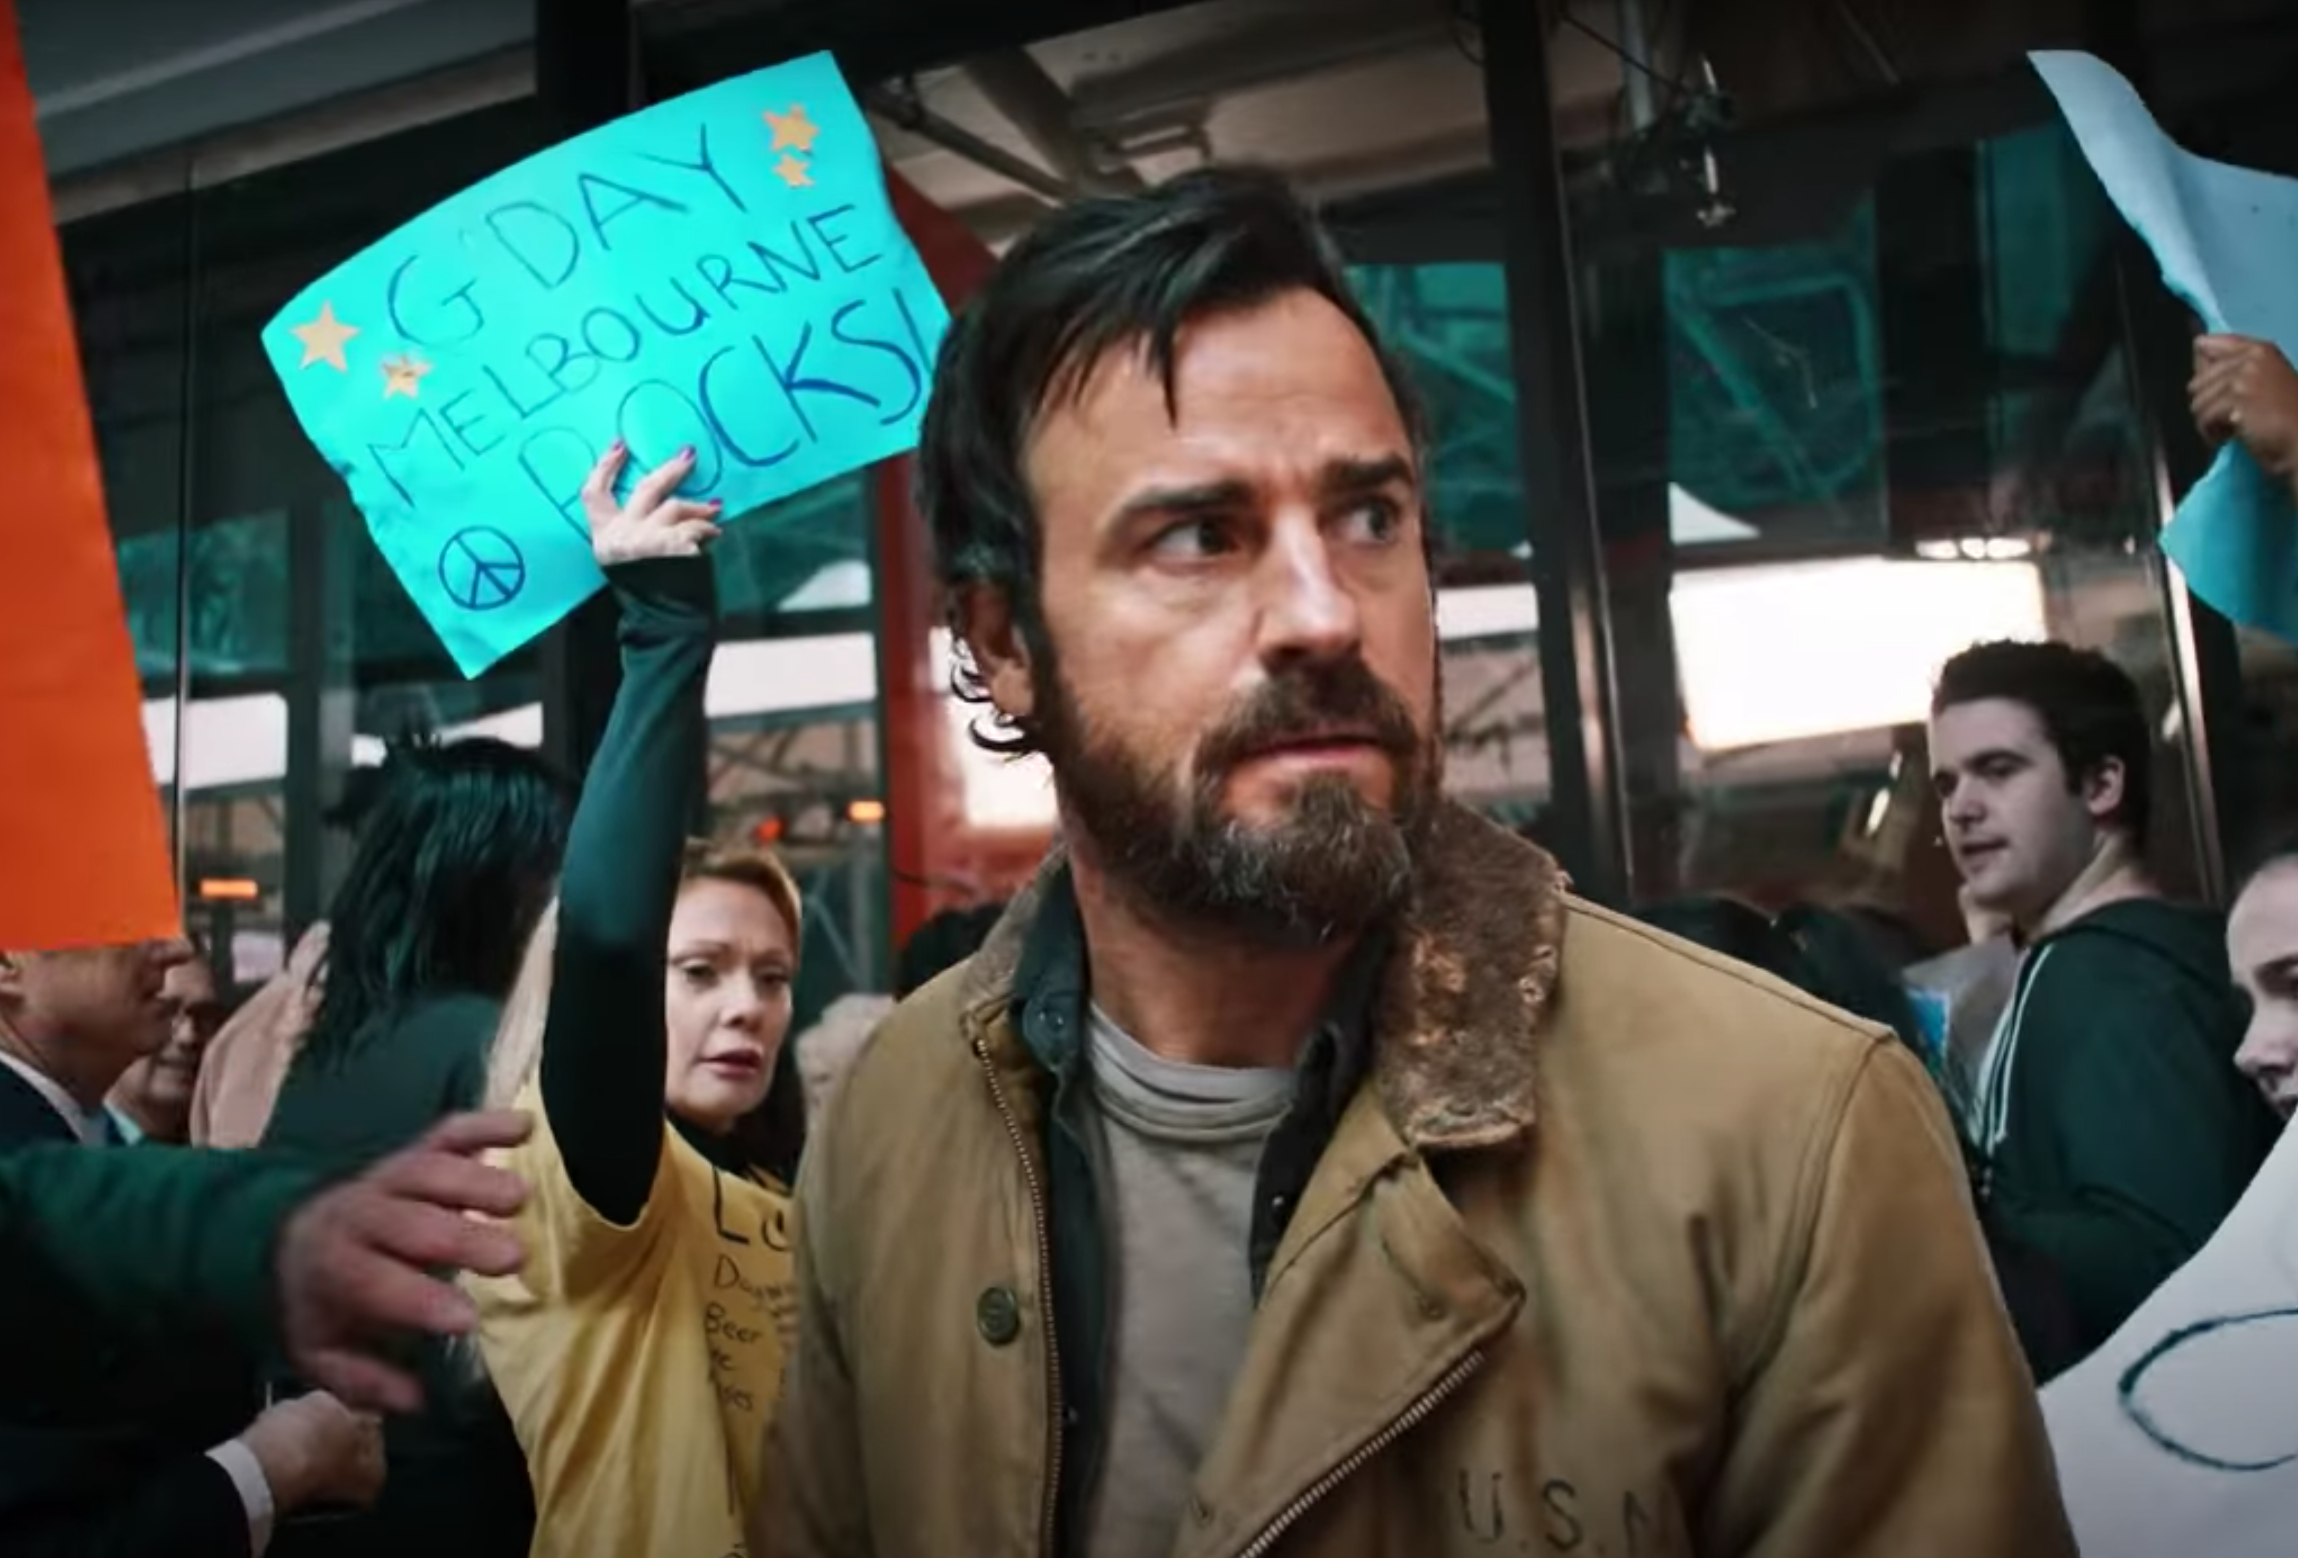 Screenshot from The Leftovers showing Justin Theroux with a beard and a tan jacket